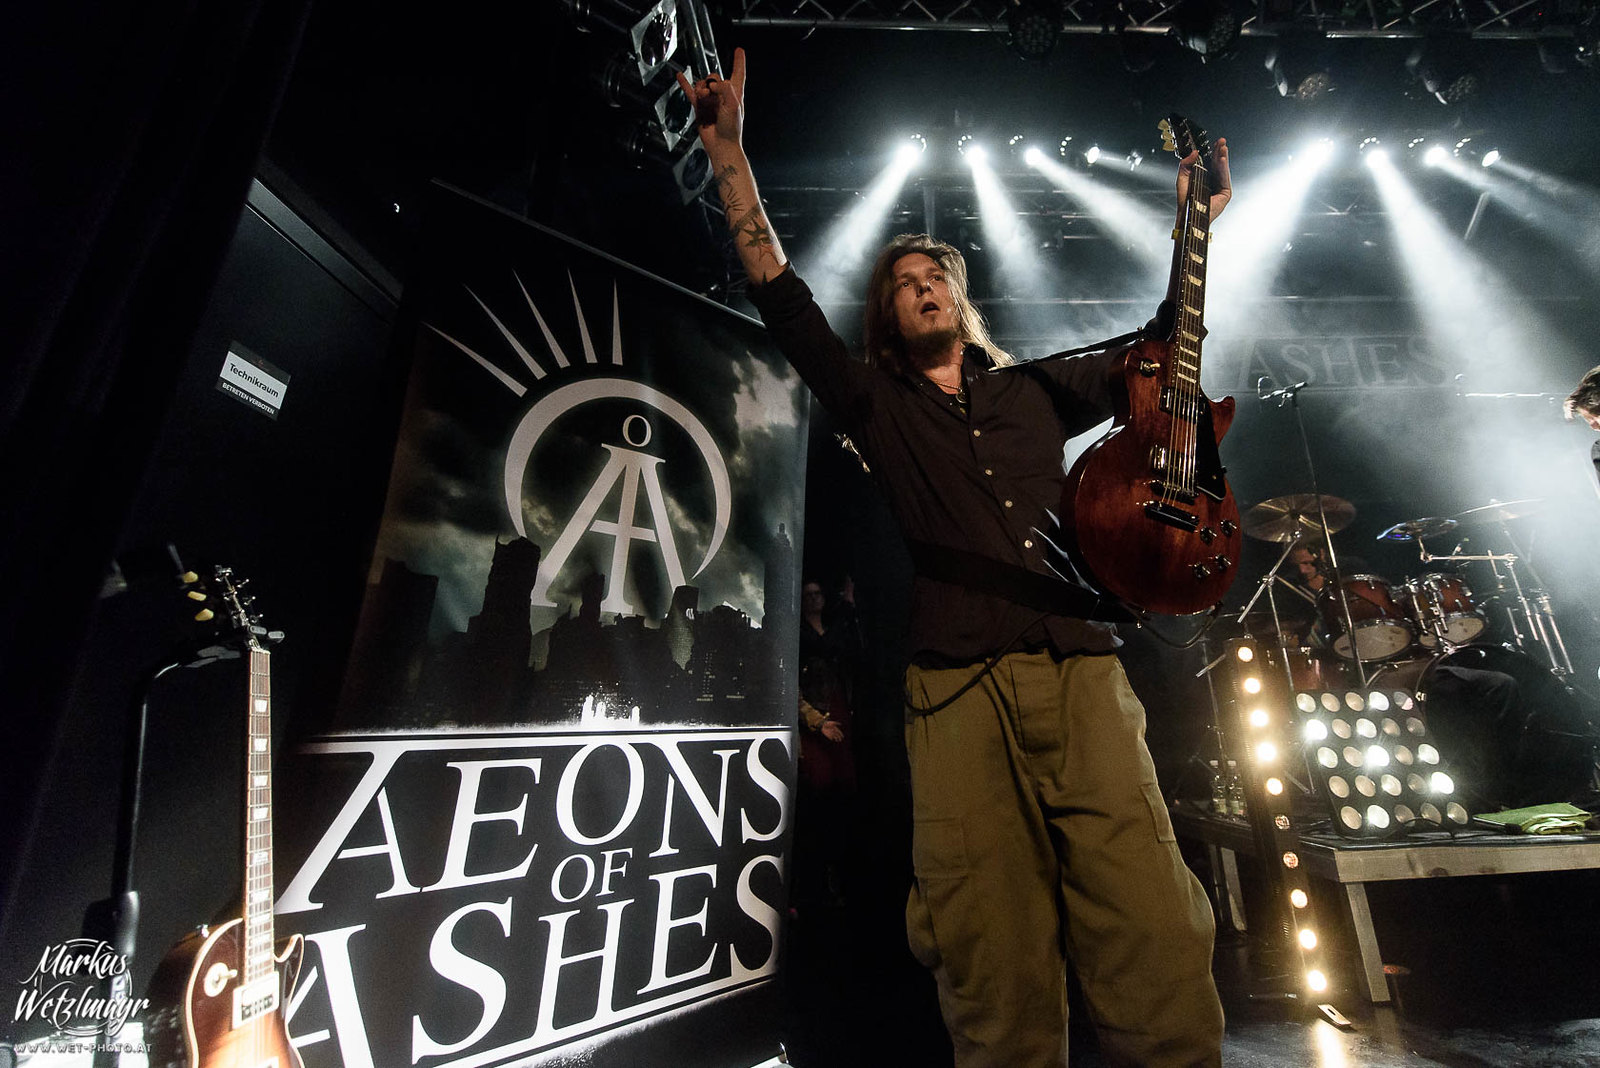 AEONS OF ASHES - Tales From The Moshpit LVIII, Frei:Raum St. Pölten